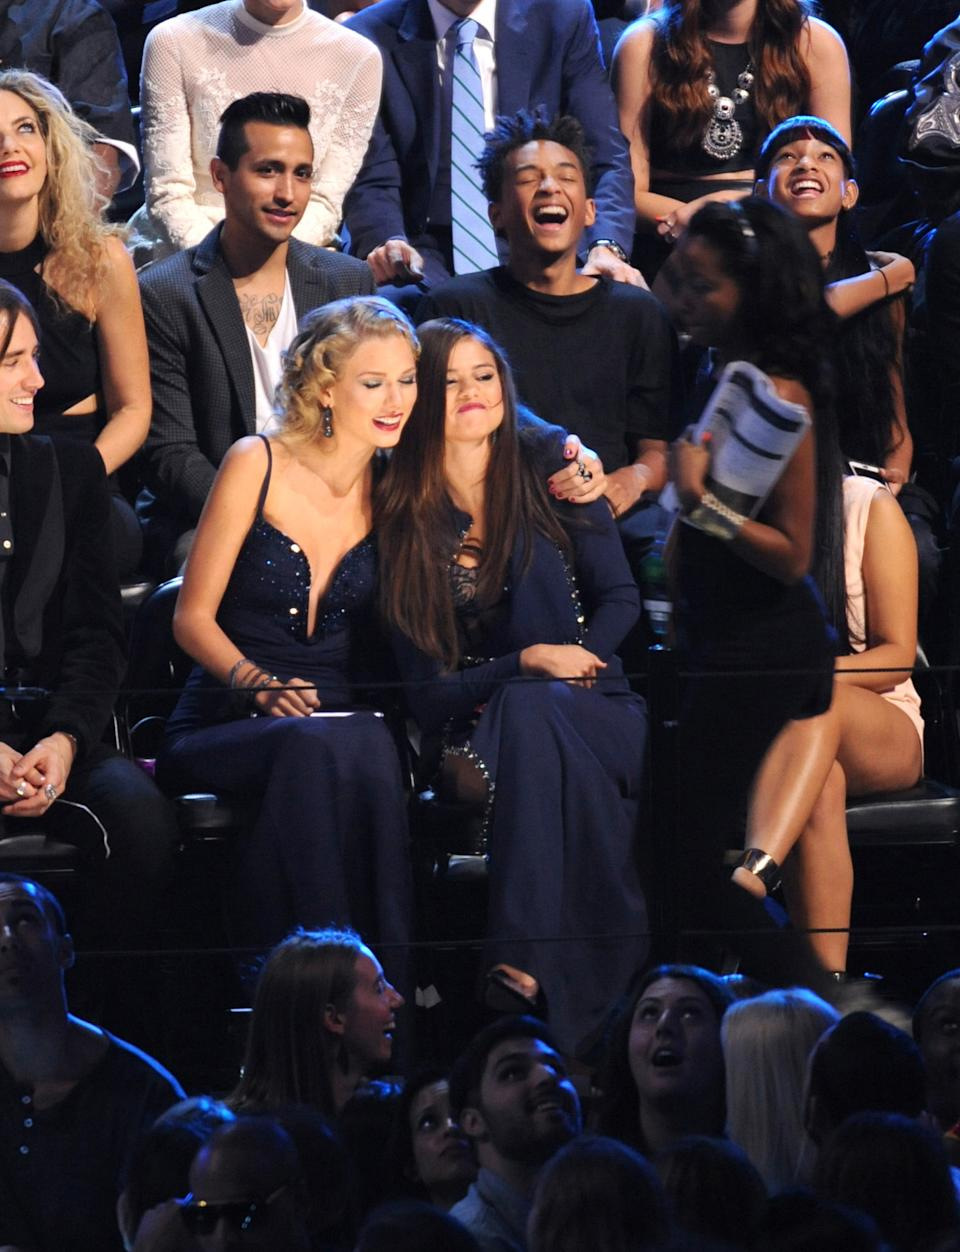 Taylor Swift, center left, and Selena Gomez sit together at the MTV Video Music Awards on Sunday, Aug. 25, 2013, at the Barclays Center in the Brooklyn borough of New York. (Photo by Scott Gries/Invision/AP)